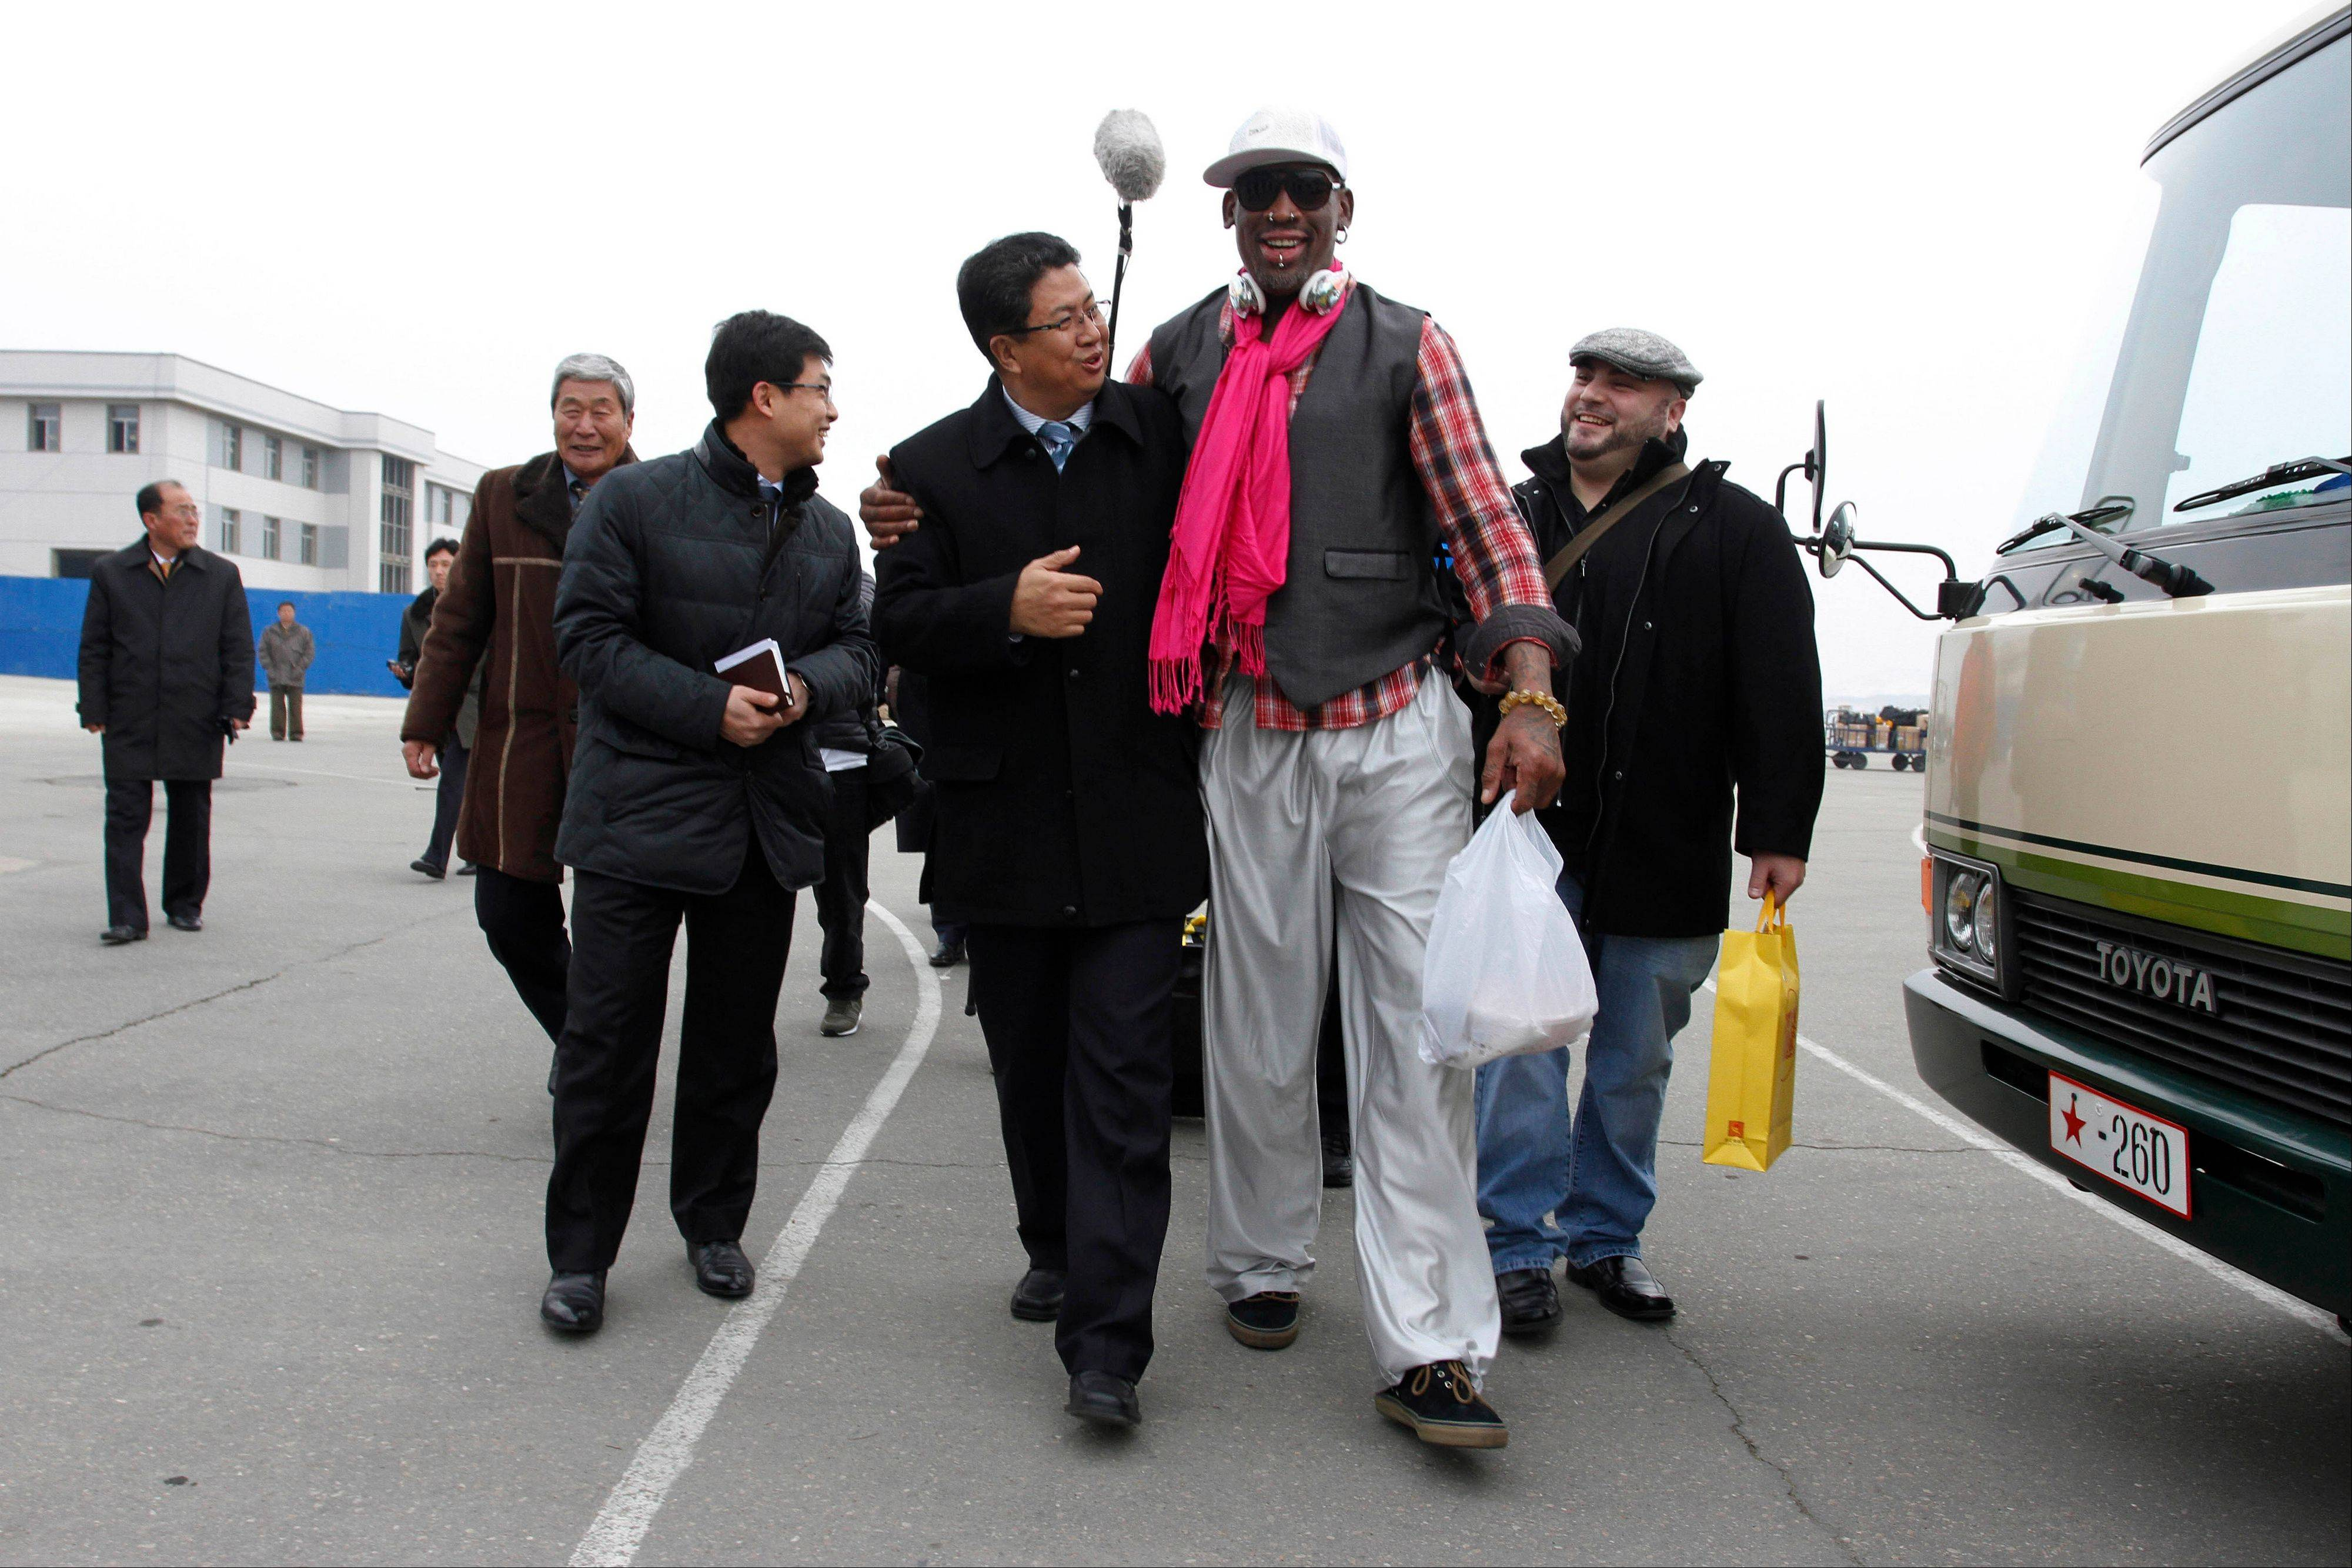 AP10ThingsToSee - Former NBA basketball star Dennis Rodman, second right, walks with North Korea's Sports Ministry Vice Minister Son Kwang Ho, third right, upon his arrival at the international airport in Pyongyang, North Korea, Monday, Jan. 6, 2014. Rodman took a team of former NBA players on a trip for an exhibition game on Kim Jong Un's birthday, Wednesday, Jan. 8.